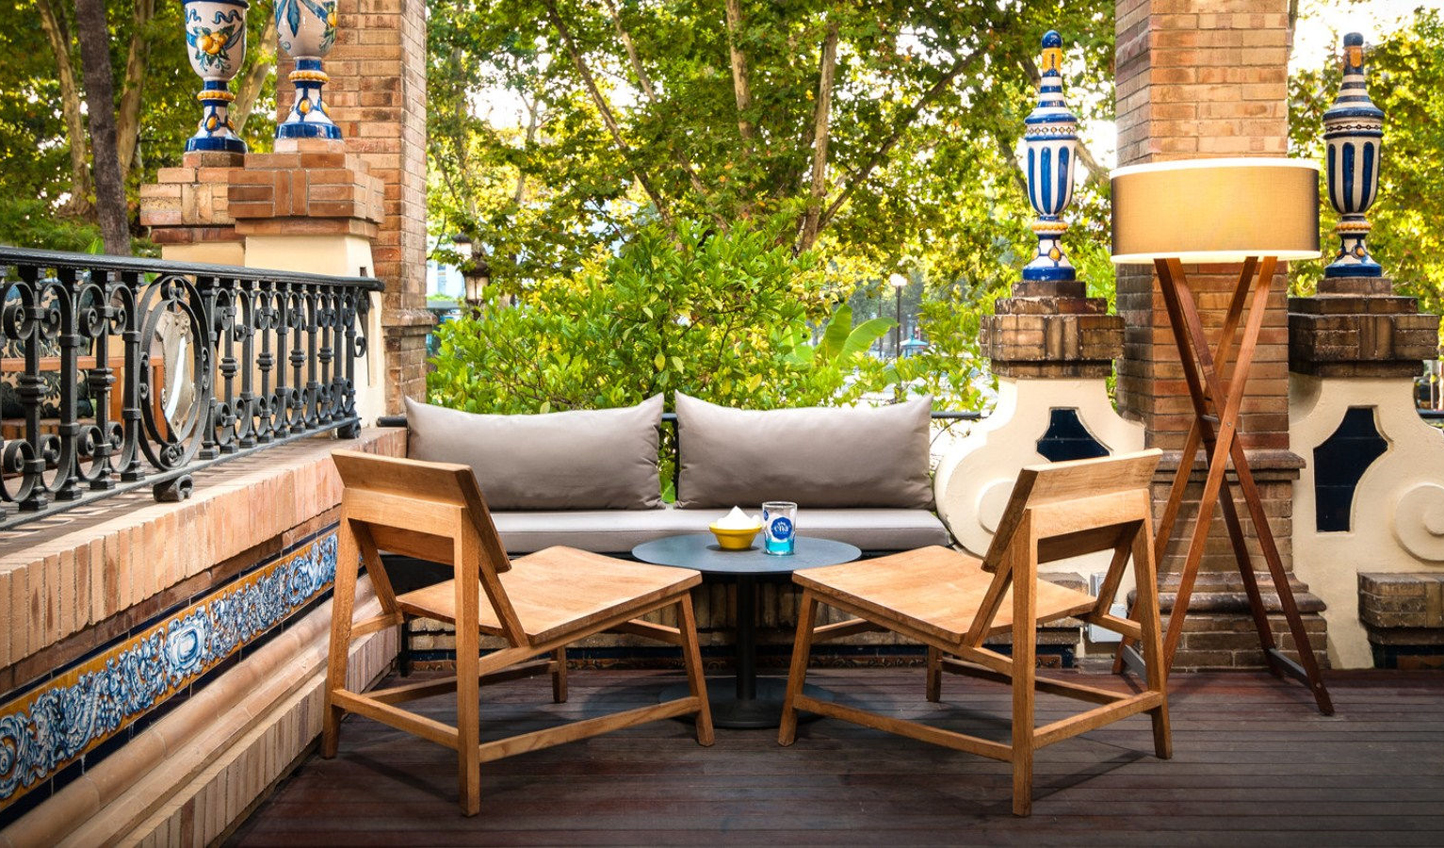 Spend afternoons relaxing out on the terrace of ENA